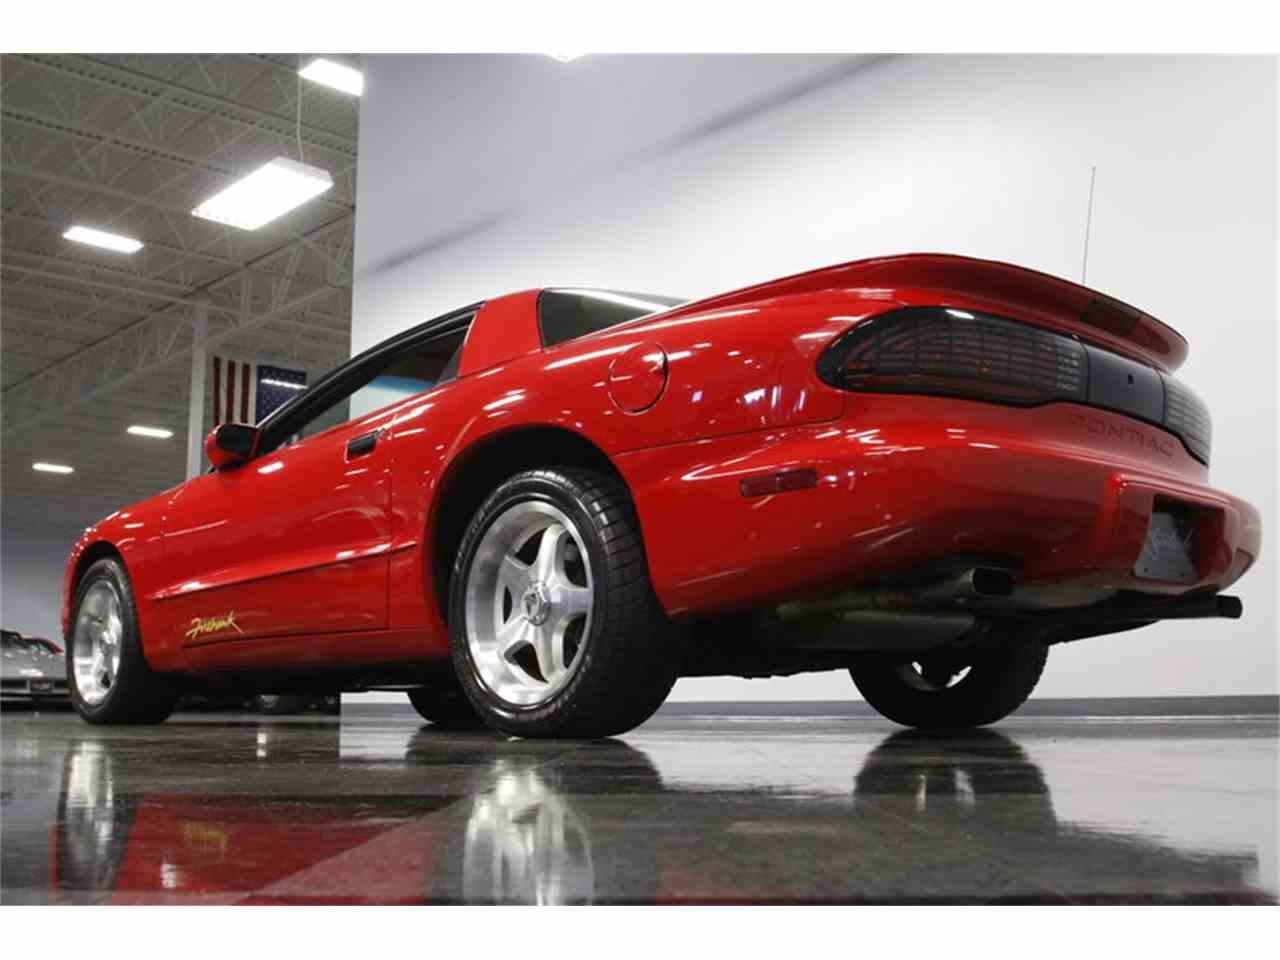 Large Picture of '93 Pontiac Firebird - $15,995.00 Offered by Streetside Classics - Charlotte - MZJM